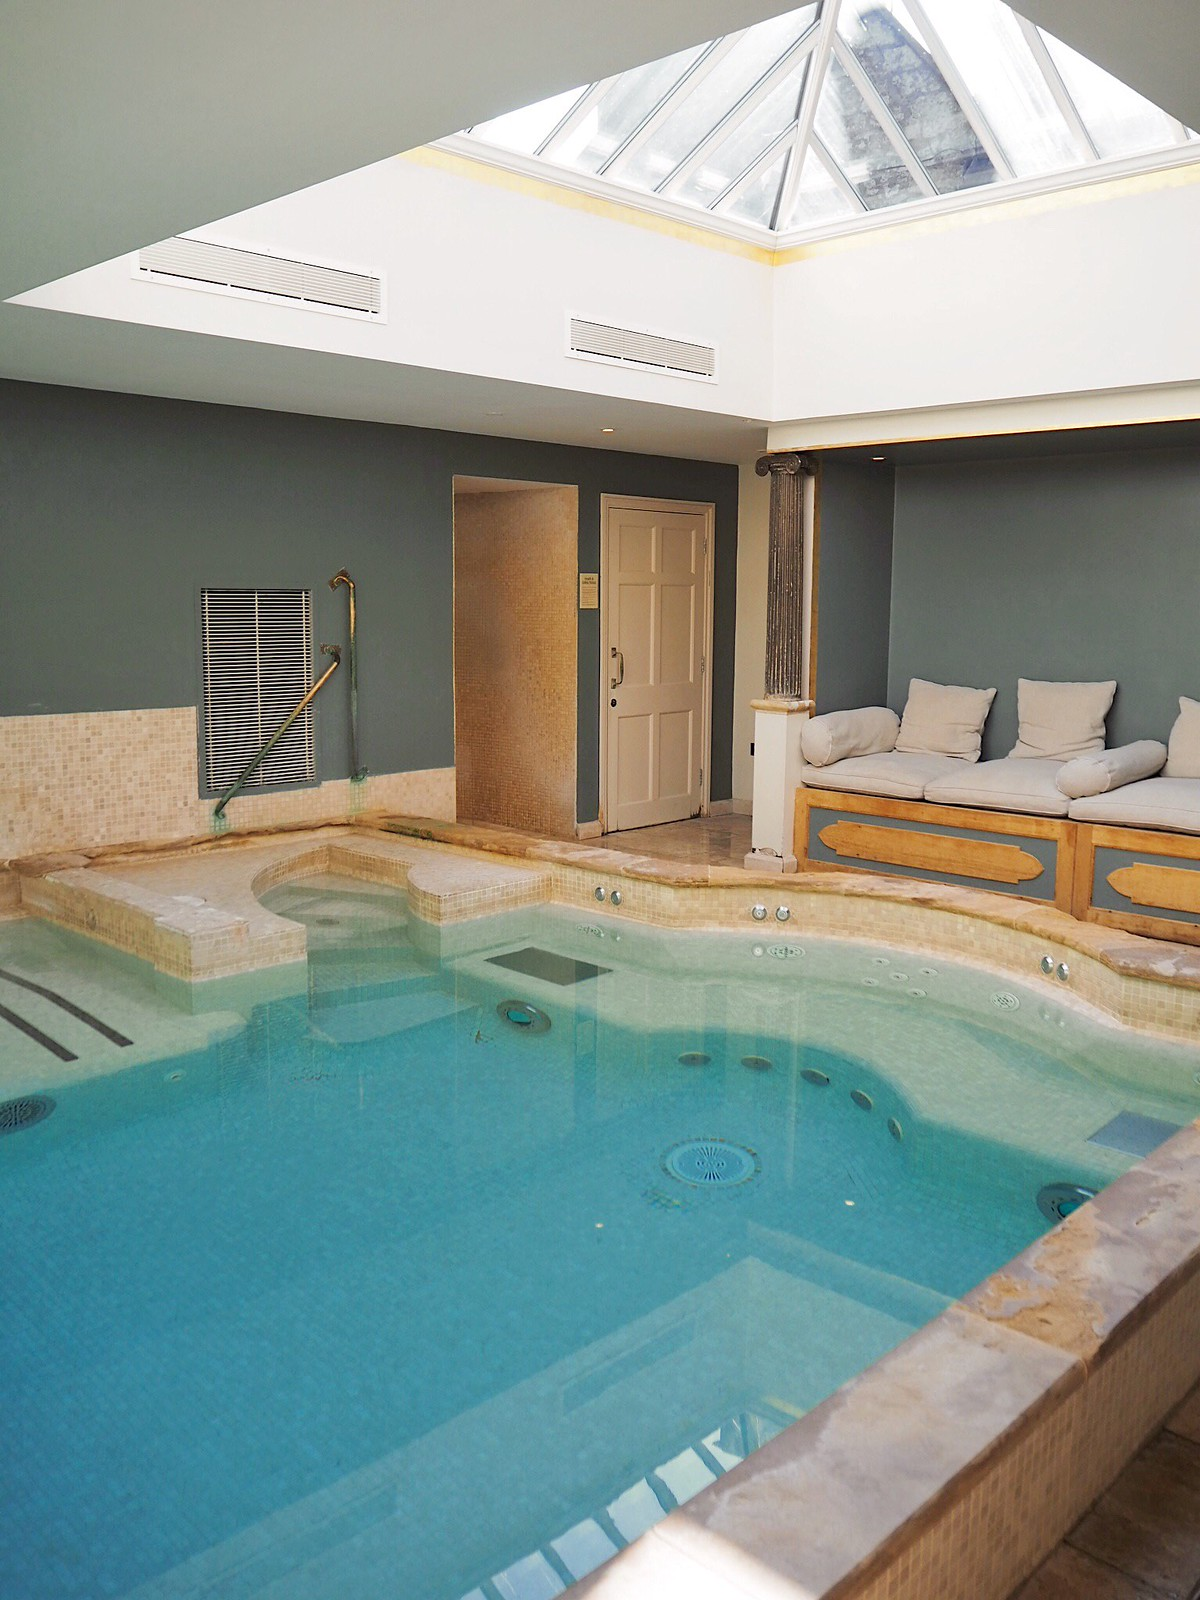 Charlton house hotel and spa swimming pool